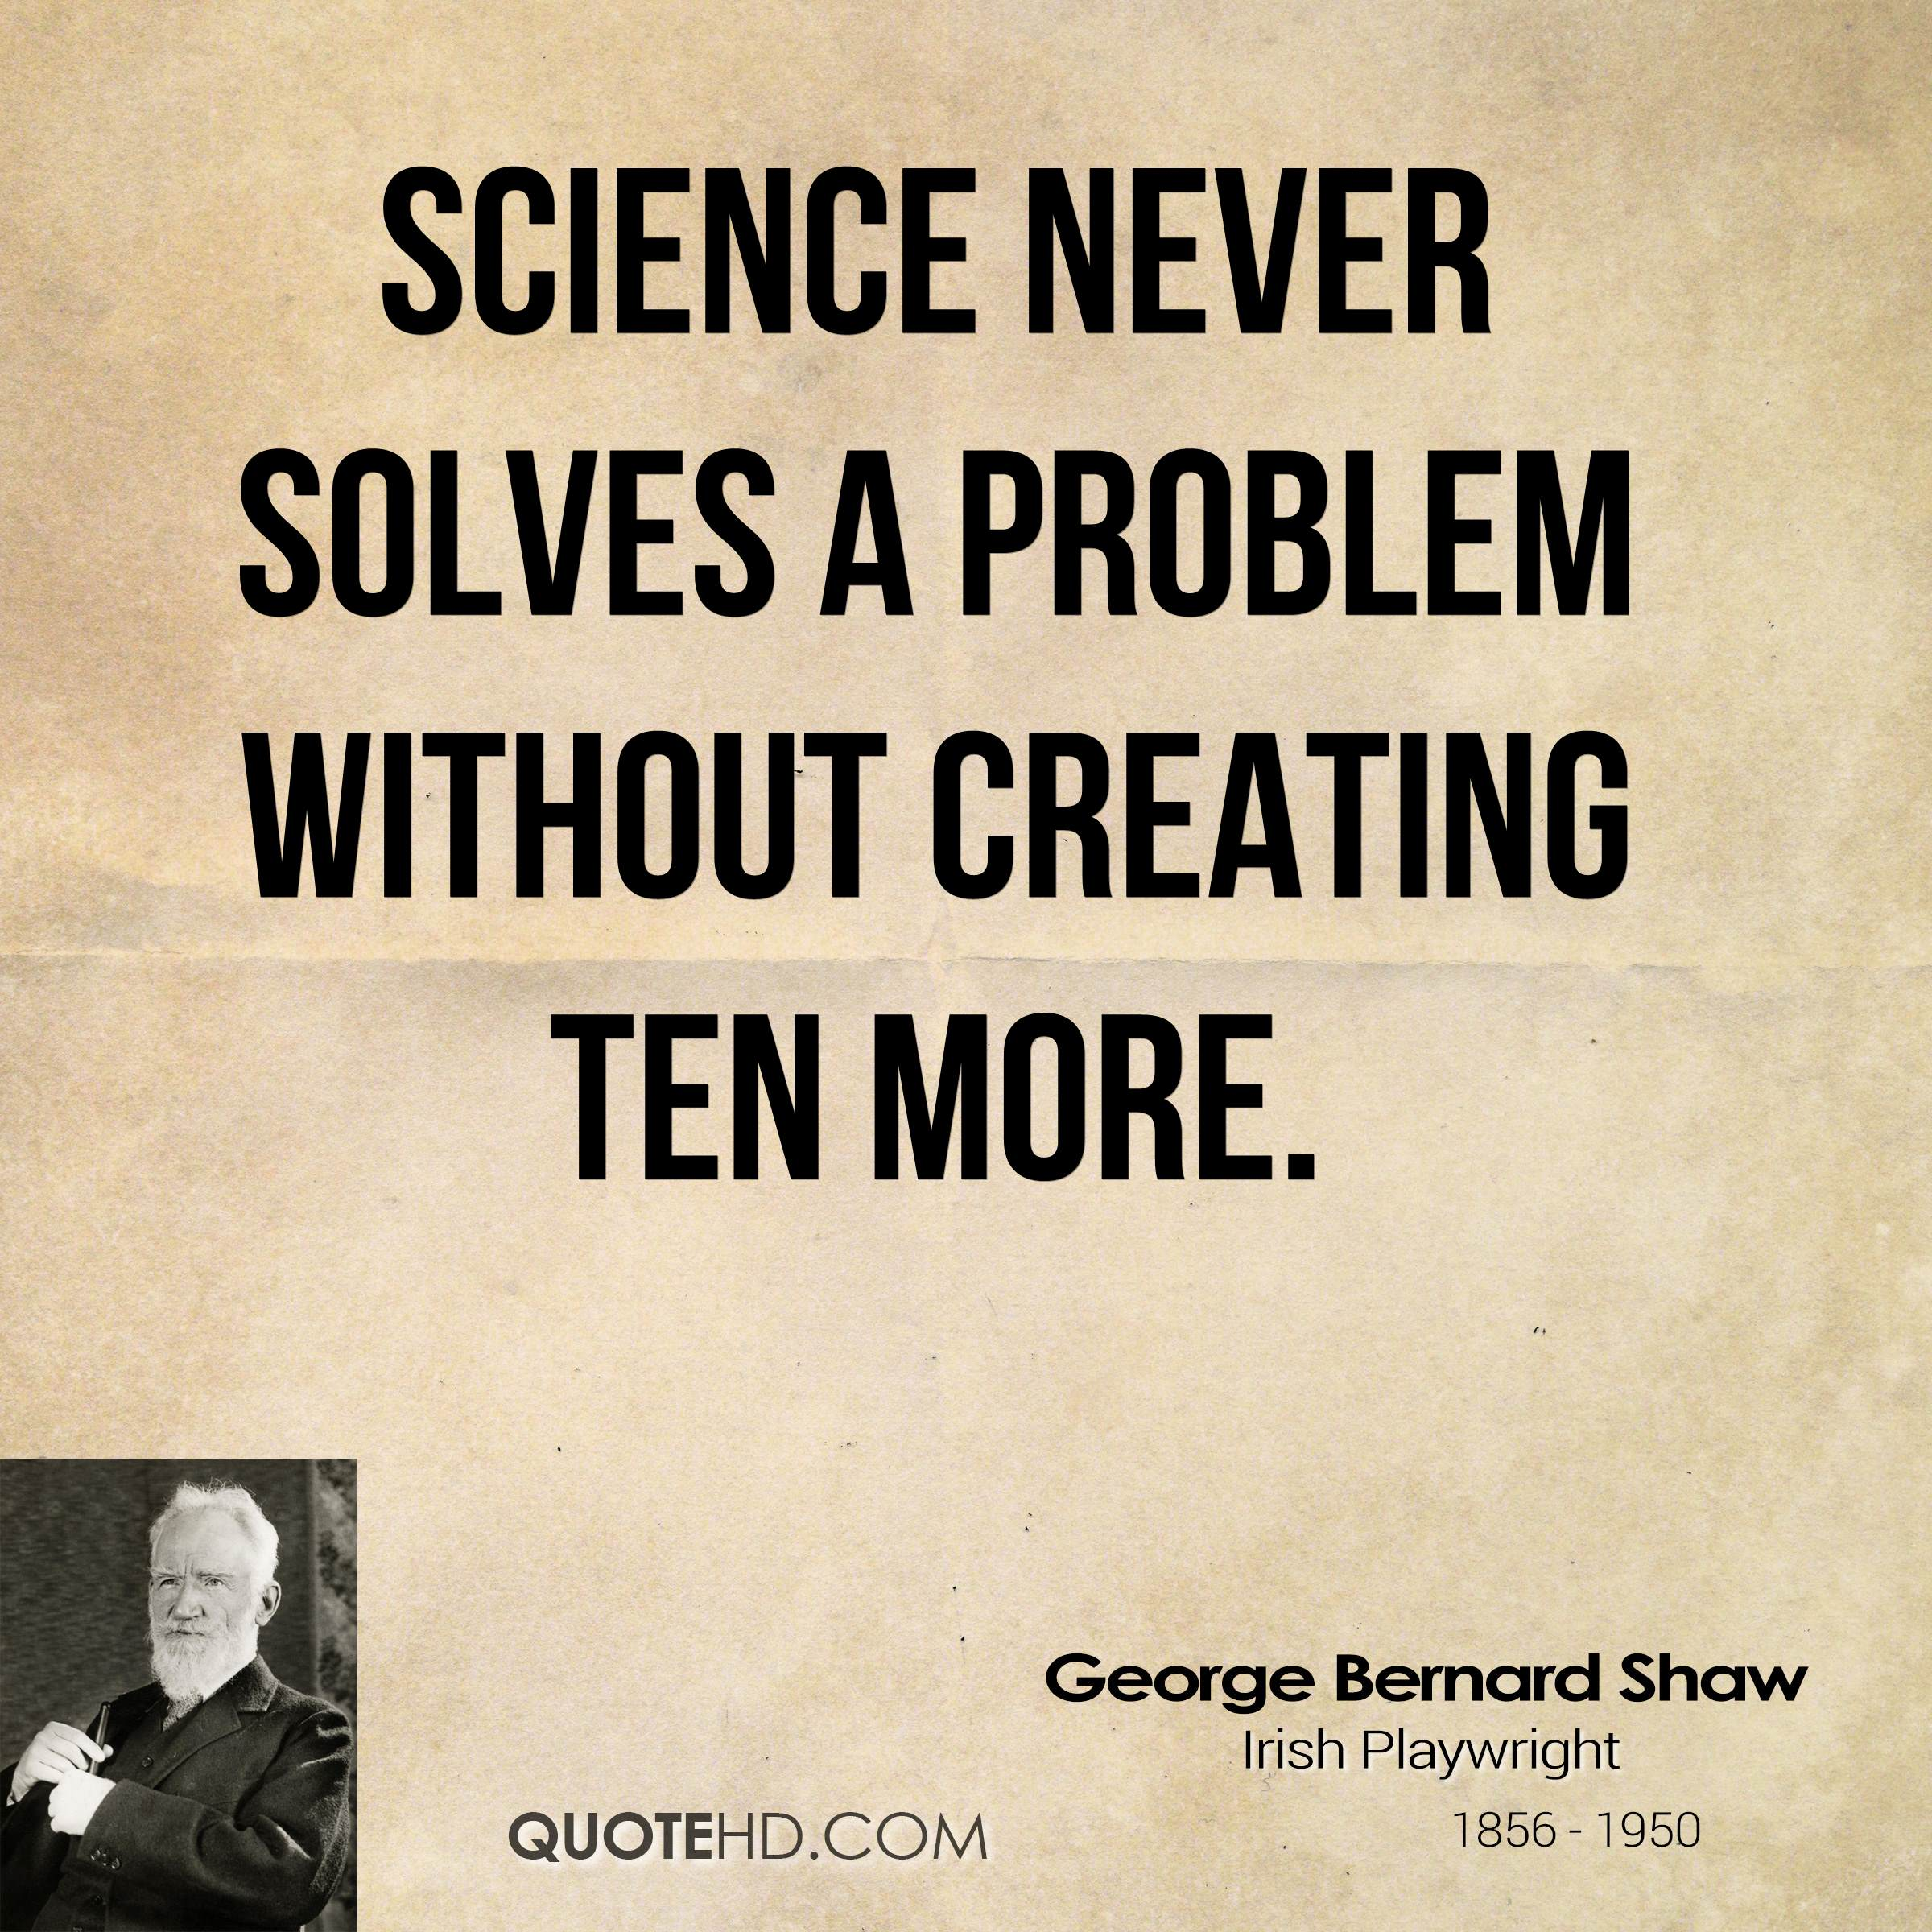 science quotes never solves without scientist problem george shaw bernard quote creating sciences frankenstein ten sayings quotehd quotesgram